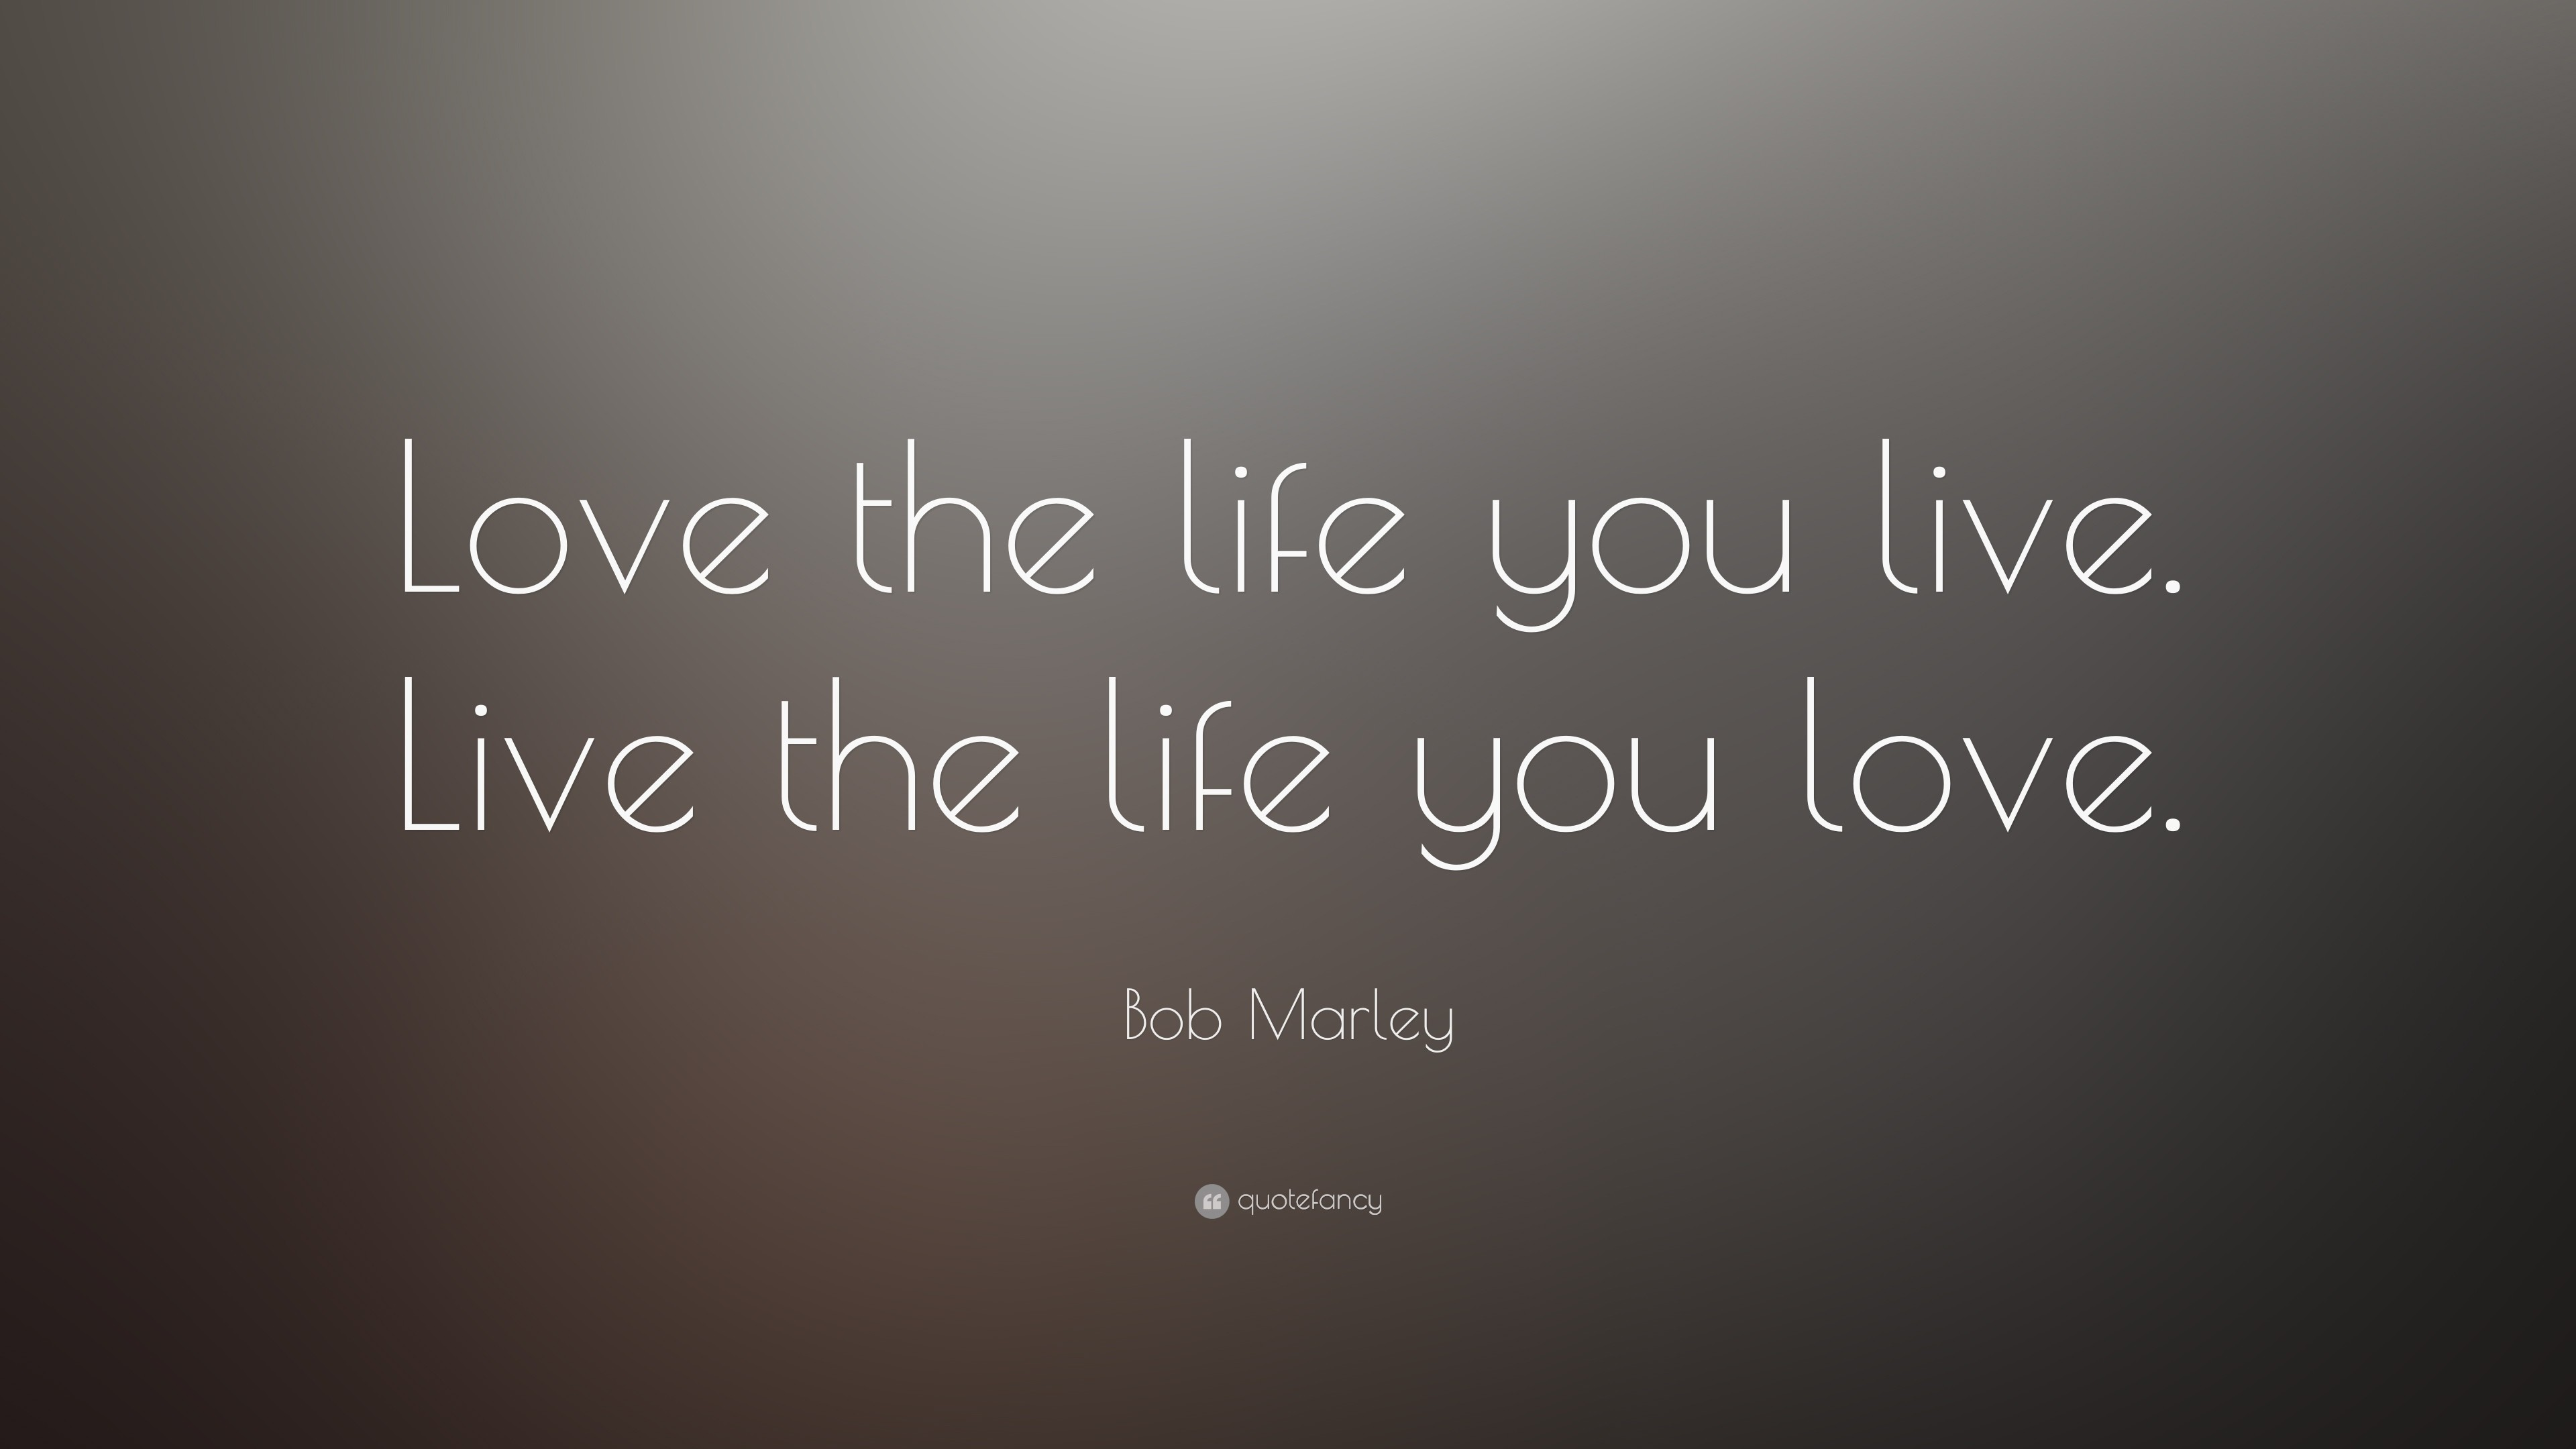 This Thing Called Life Quotes Bob Marley Quotes Wallpaper 74 Images